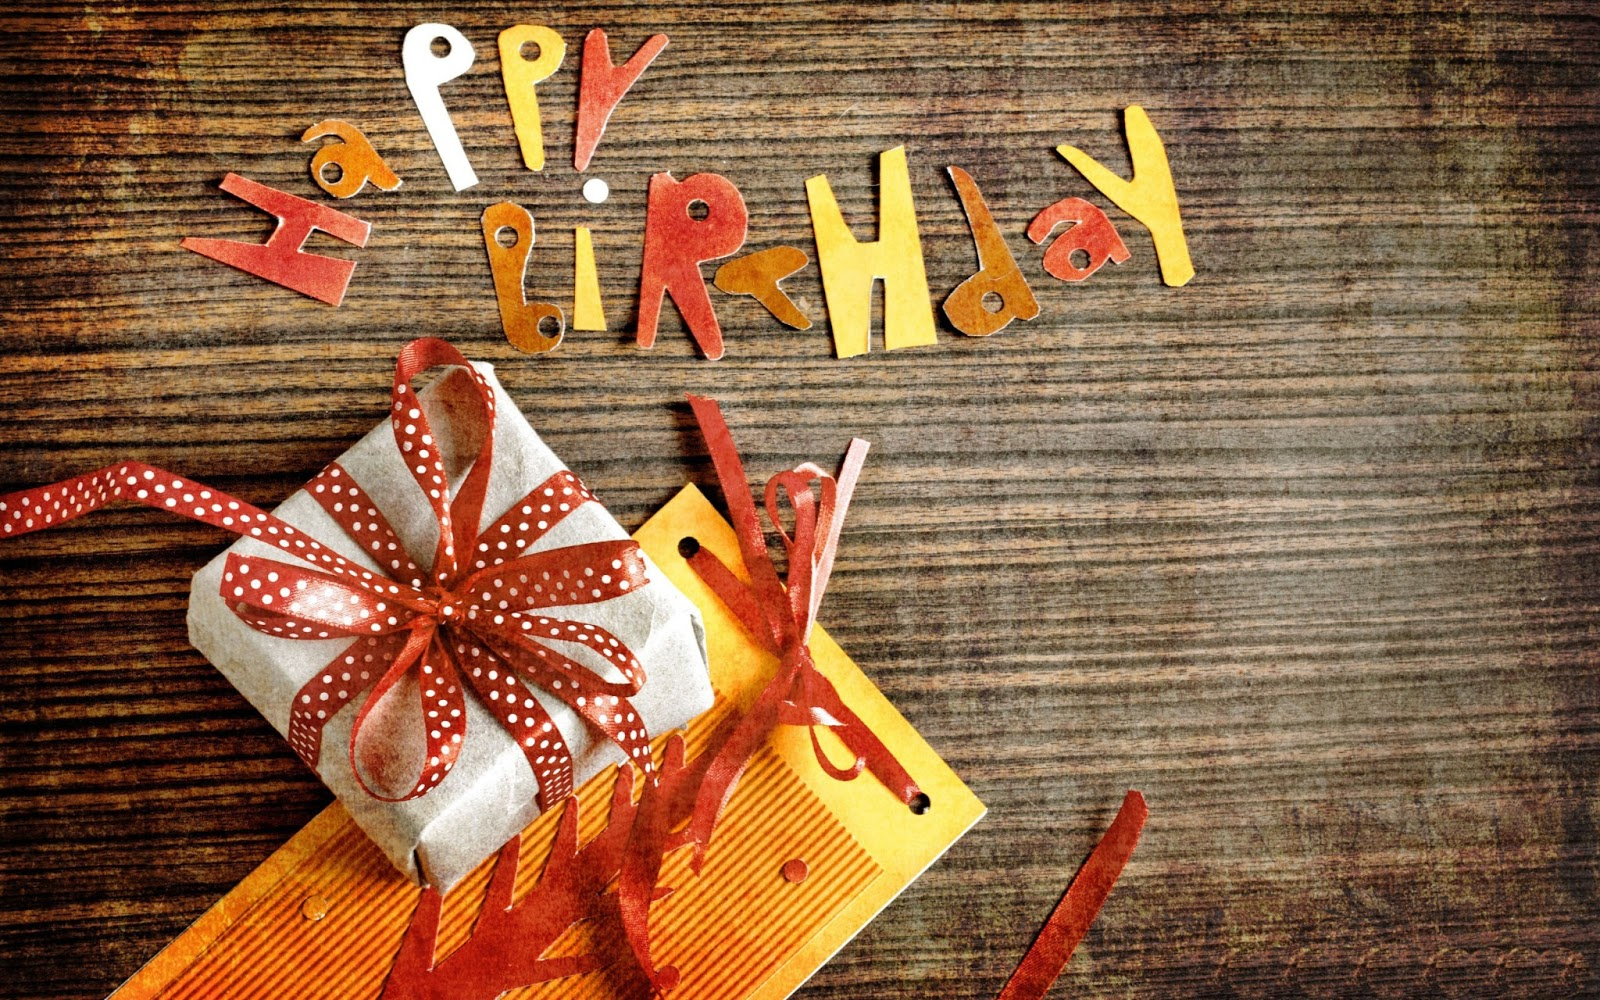 birthday wishes high quality images ; Happy+Birthday+Gifts+hd+wallpaper